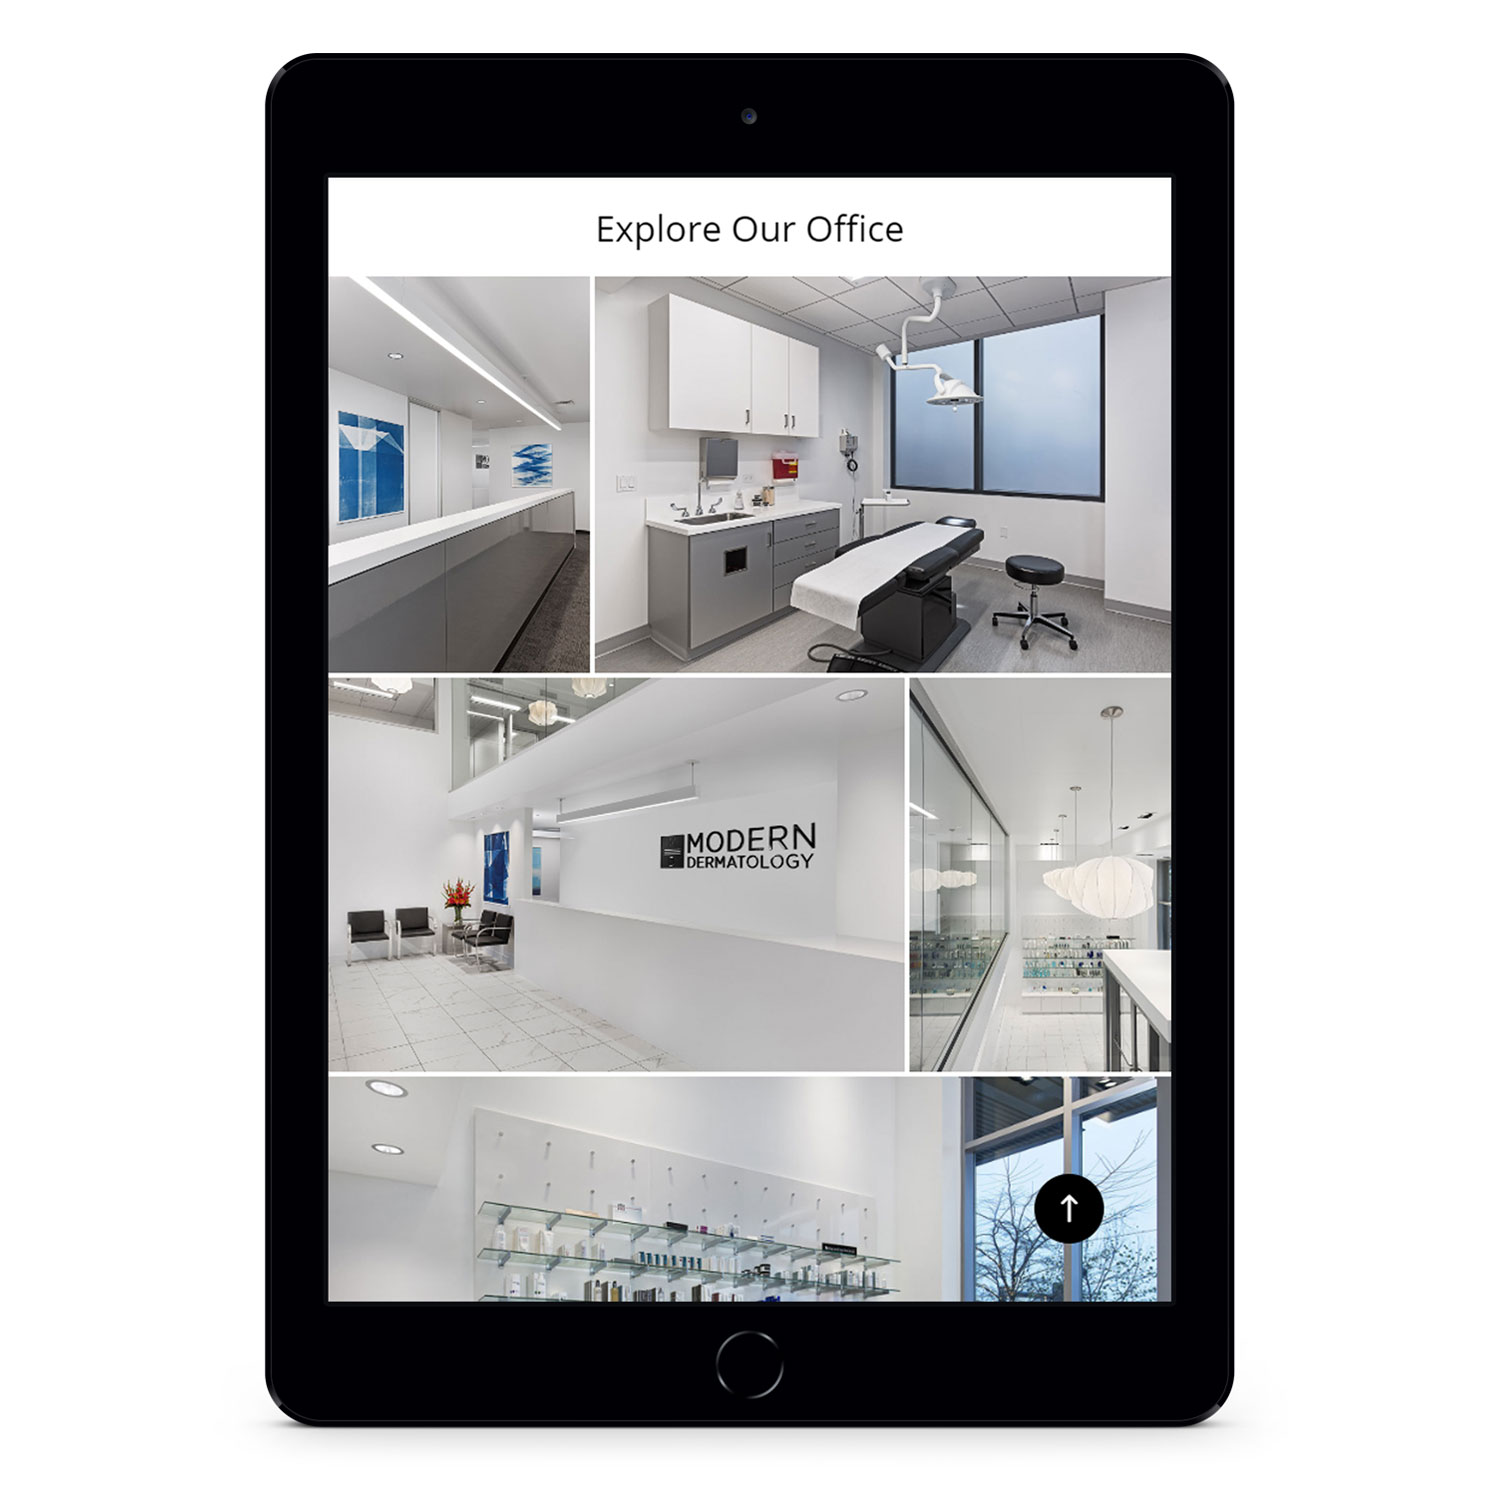 Modern Dermatology office gallery on tablet